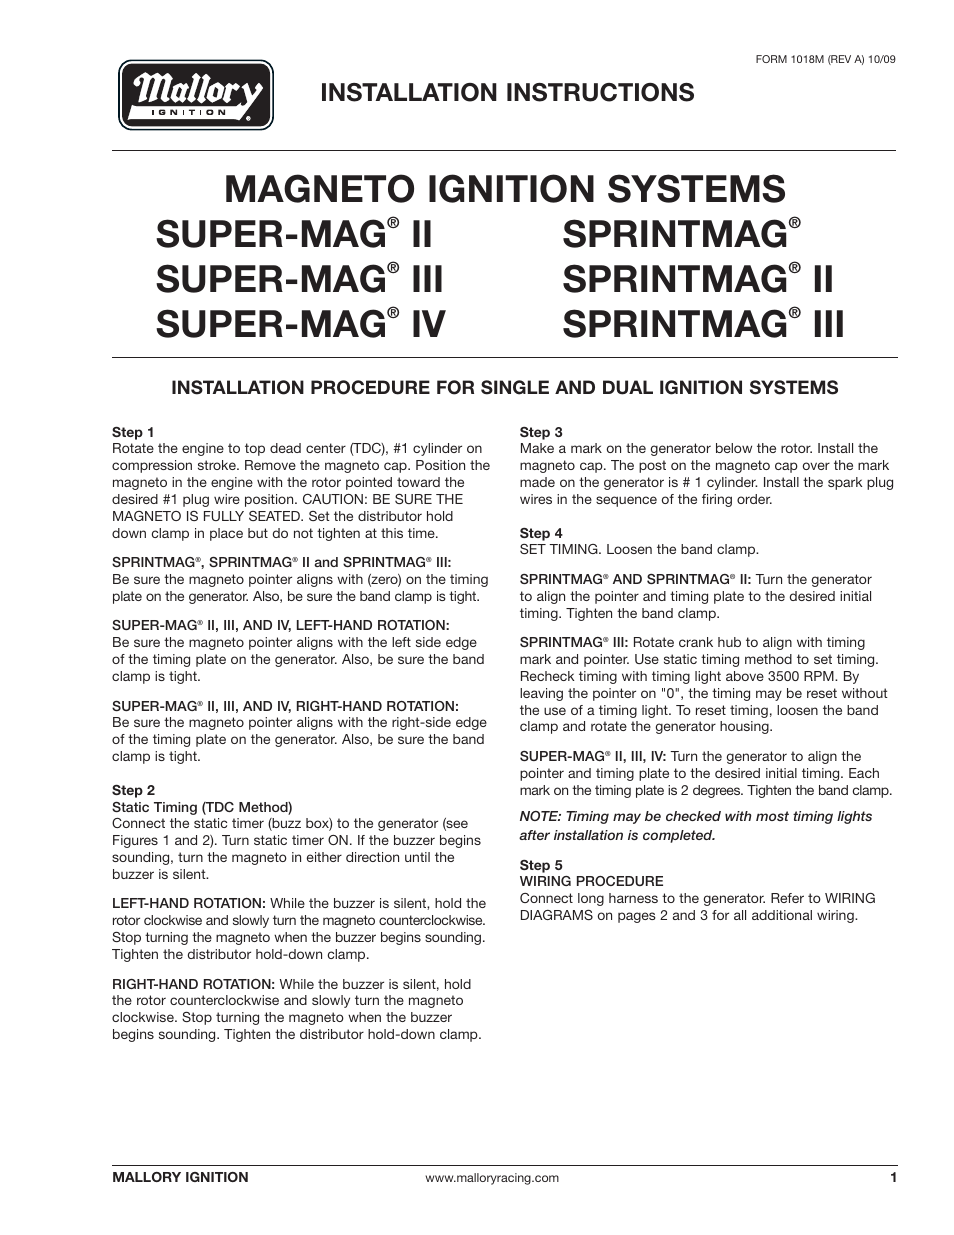 Wiring Diagram For Mallory Super Mag 3 38 Images Ignition Systems Diagrams Magneto Sprintmag Iiiii Page1